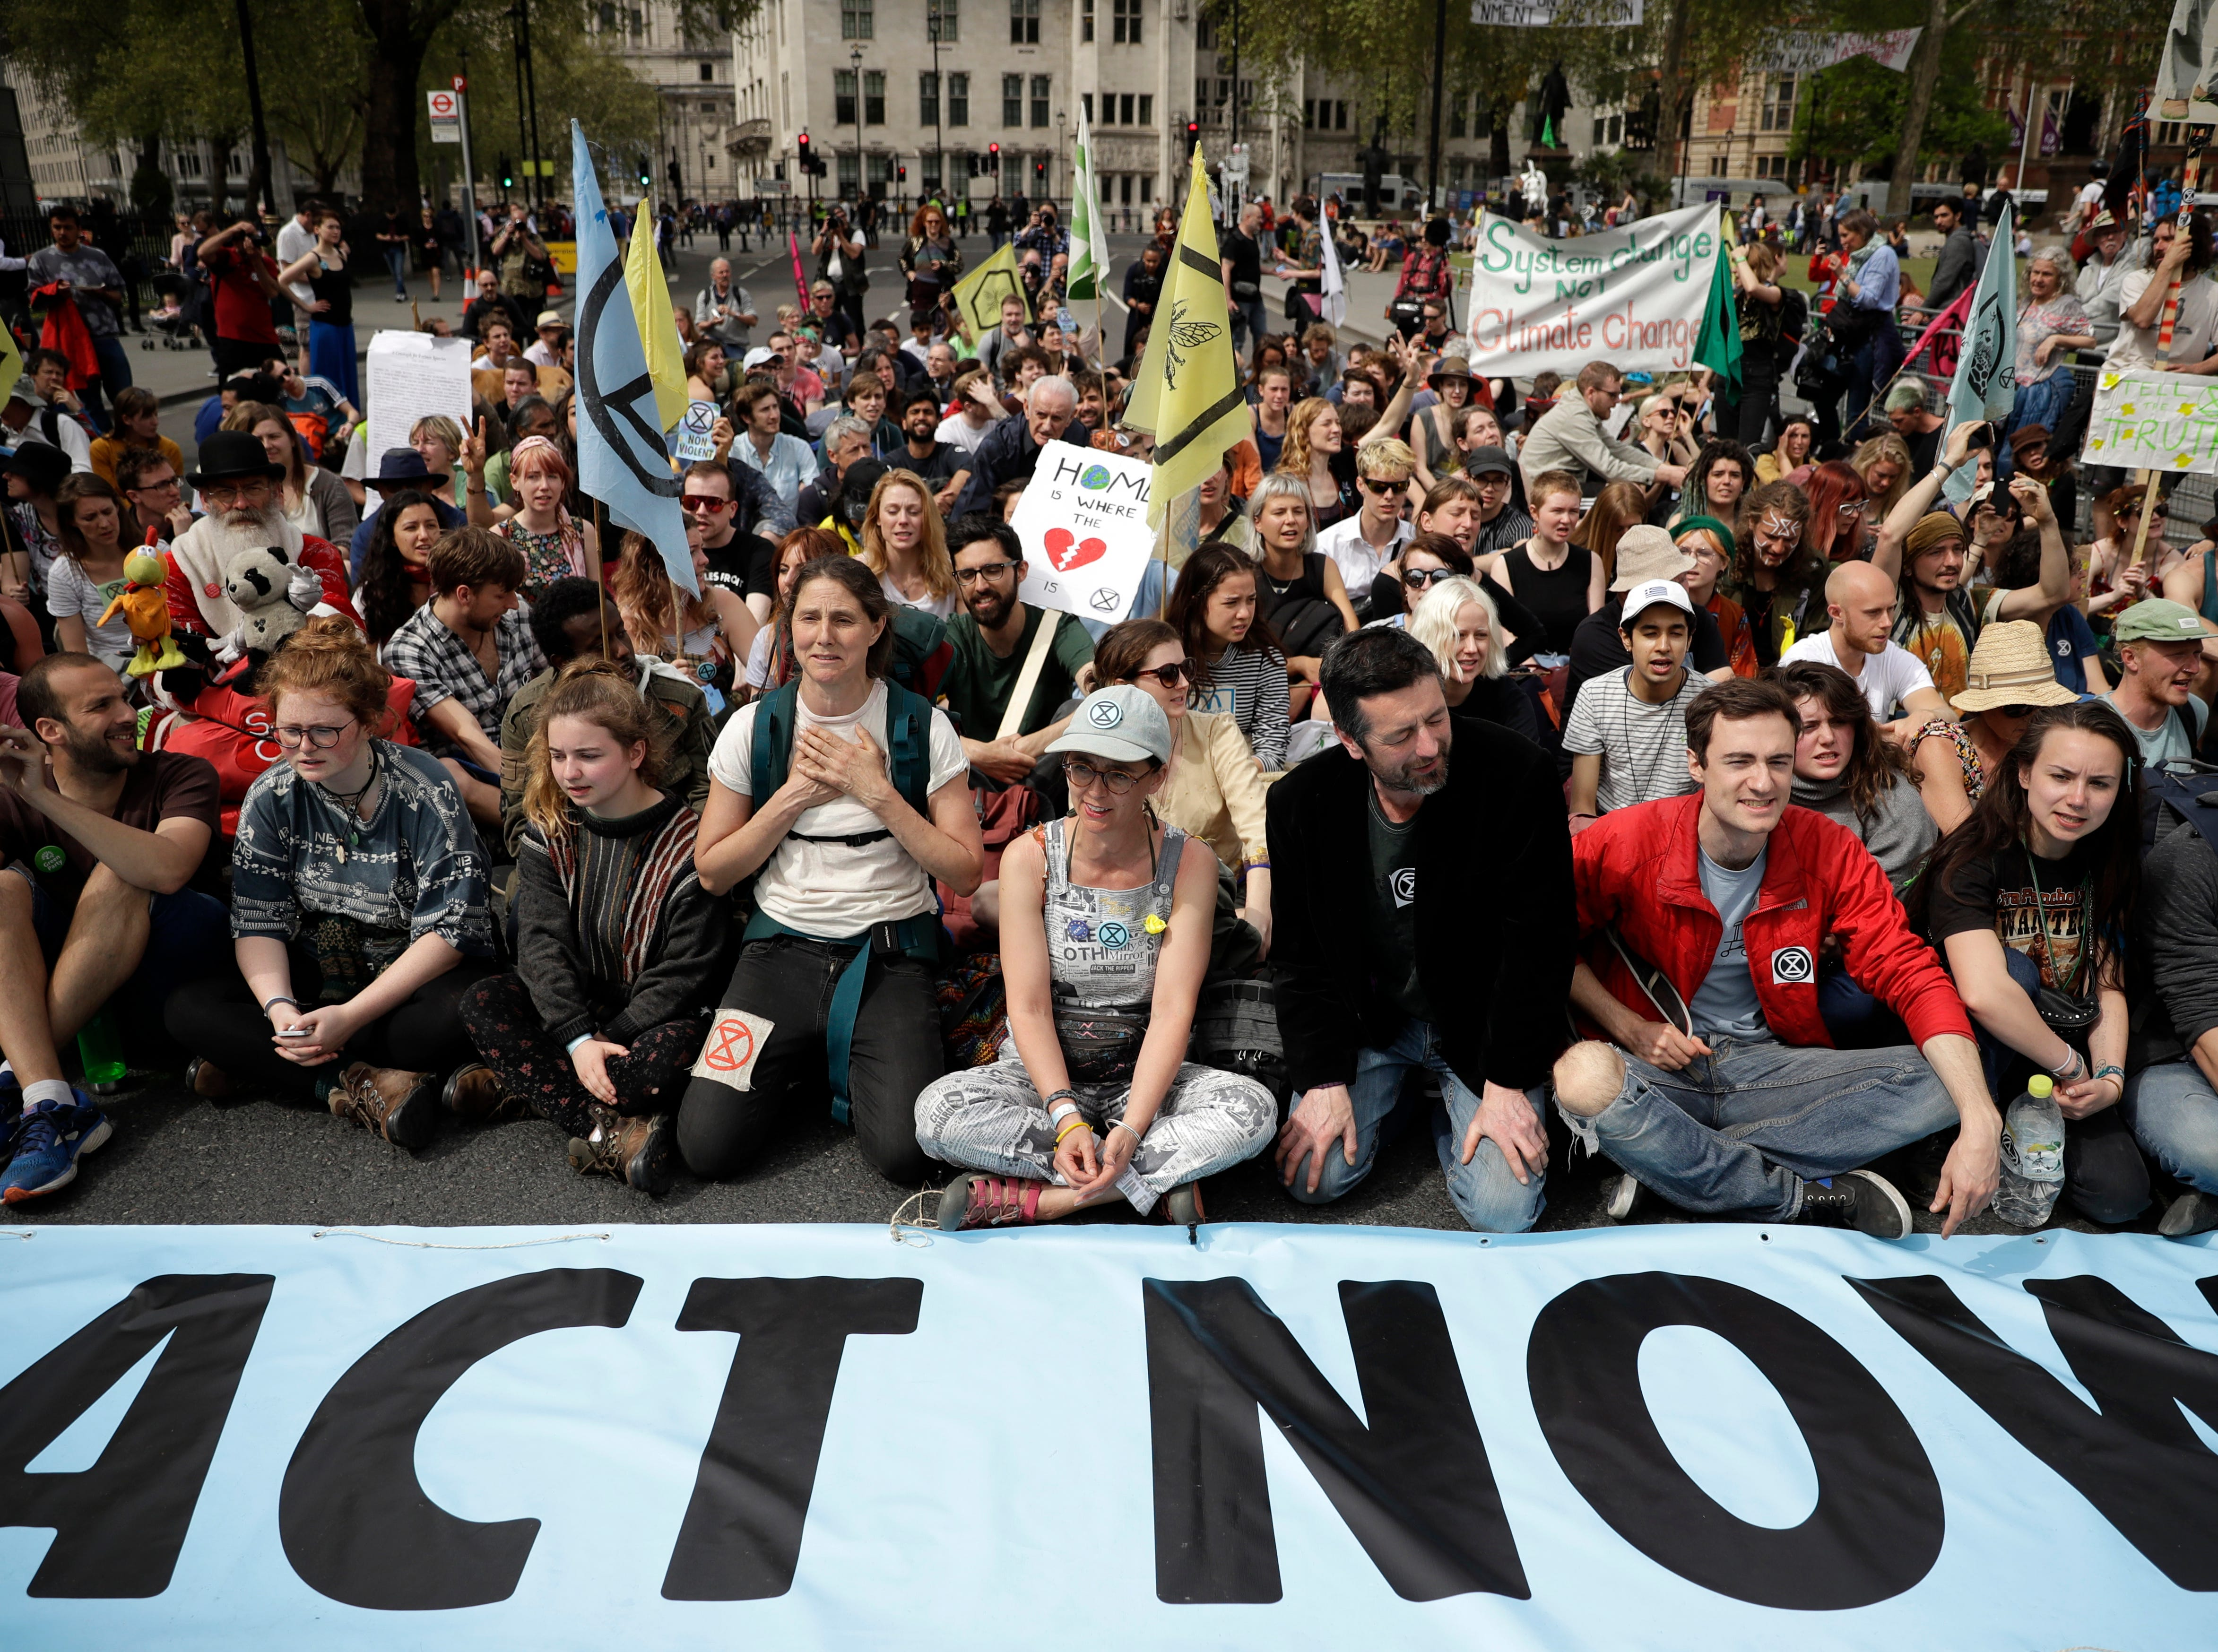 Protesters sit in the road in Parliament Square, in London, Tuesday April 23, 2019, during a climate protest. The non-violent protest group, Extinction Rebellion, is seeking negotiations with the government on its demand to make slowing climate change a top priority.